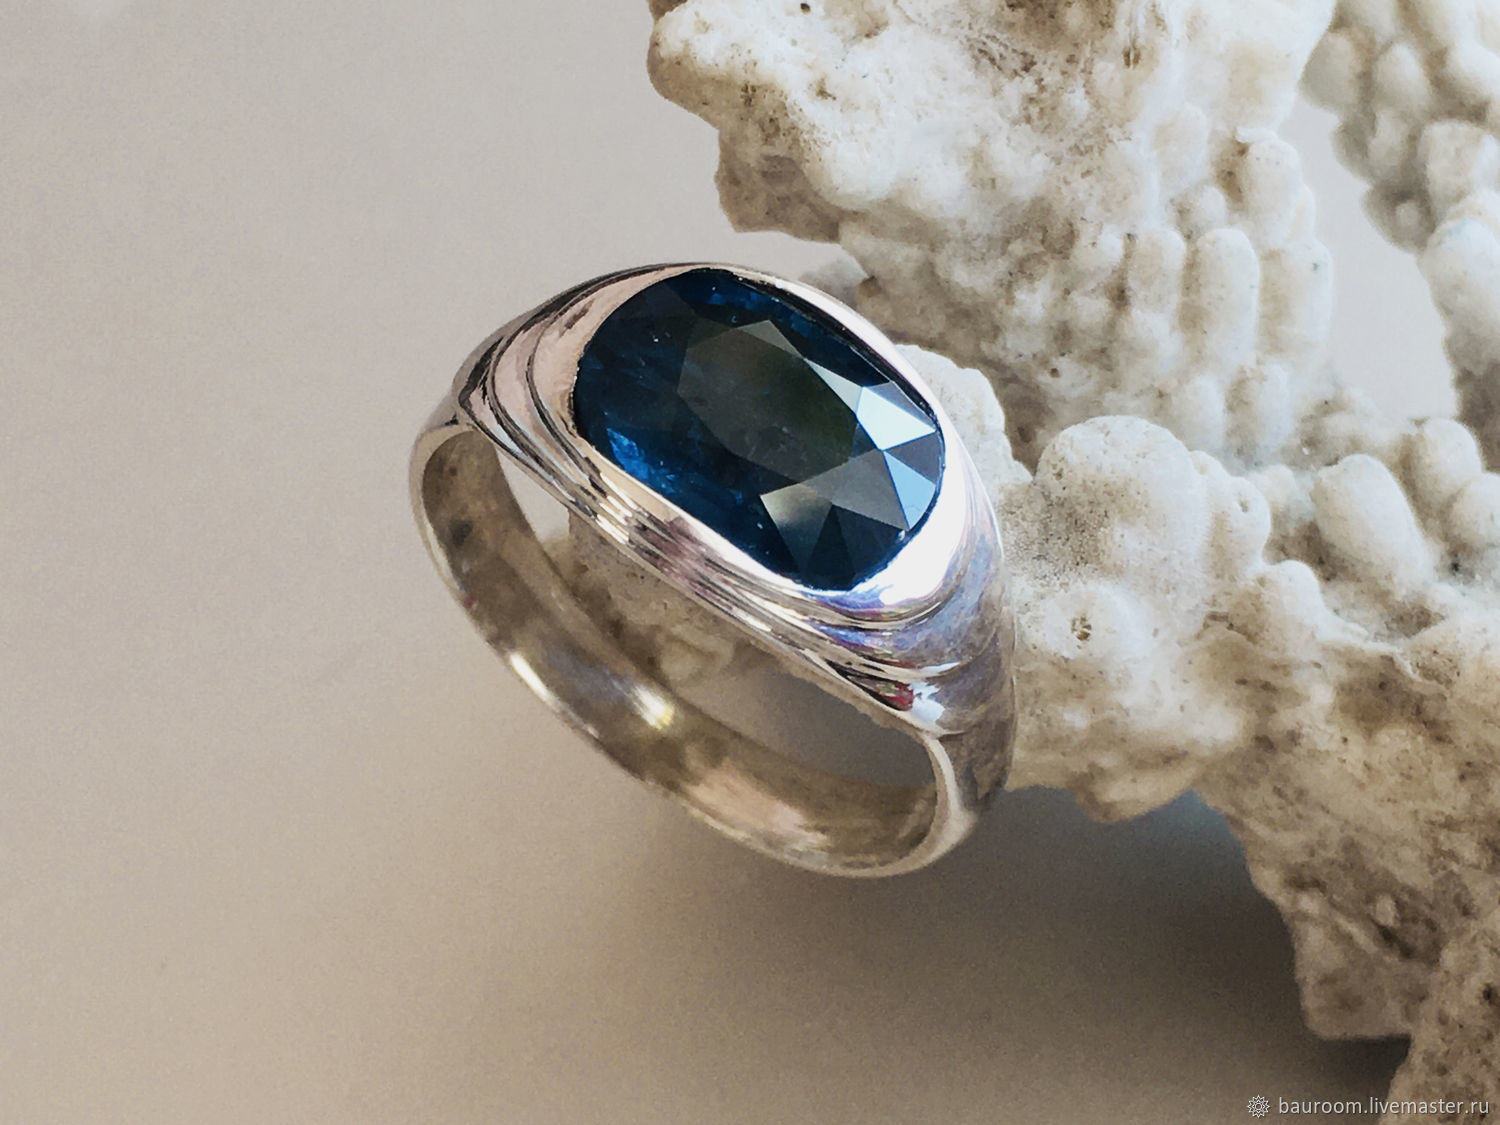 Vedic silver ring with Blue Sapphire (1,89 ct)handmade, Rings, Moscow,  Фото №1